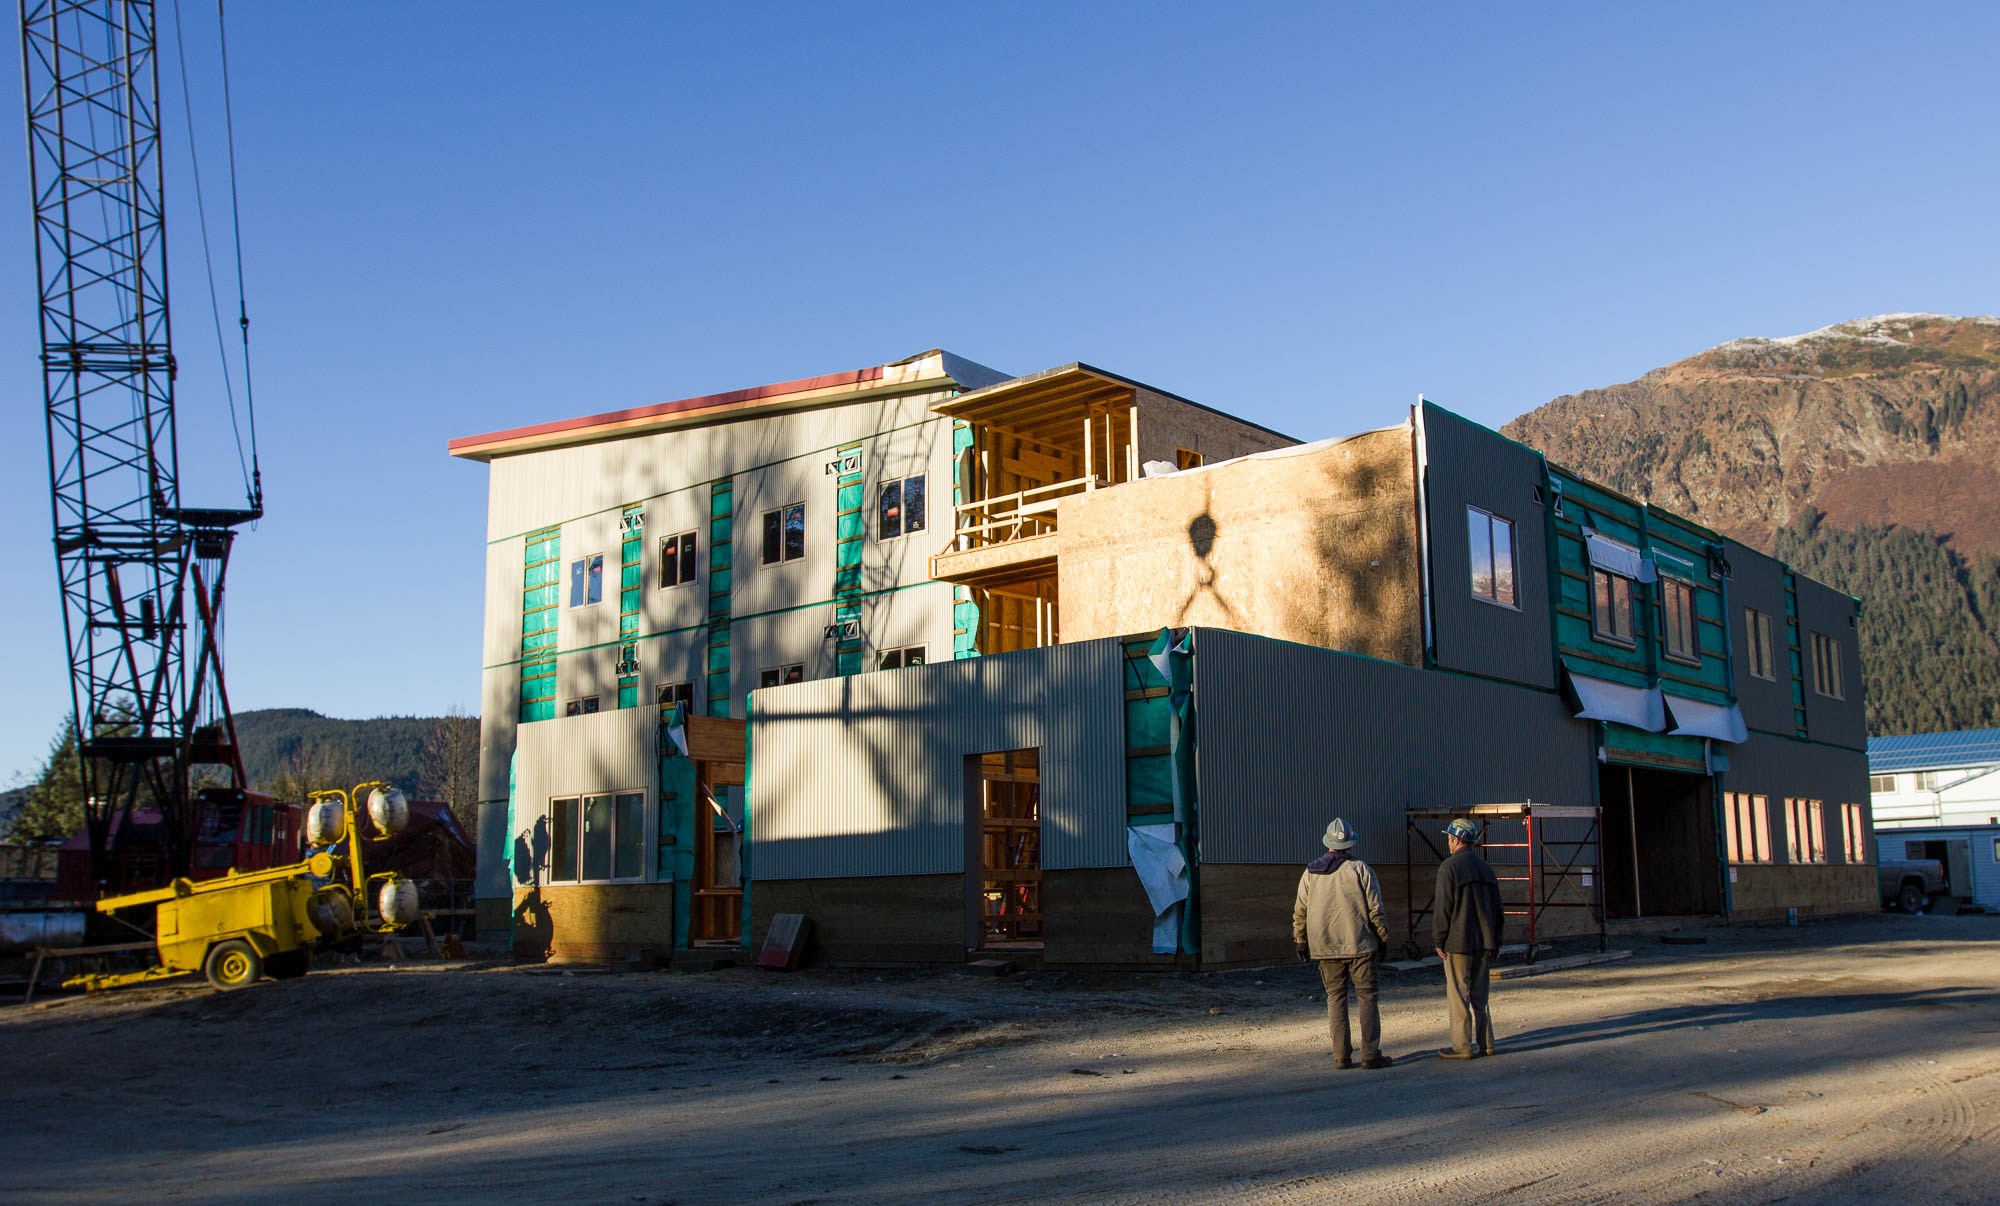 The Housing First Project under construction on November 17, 2016. (Photo by David Purdy/KTOO)